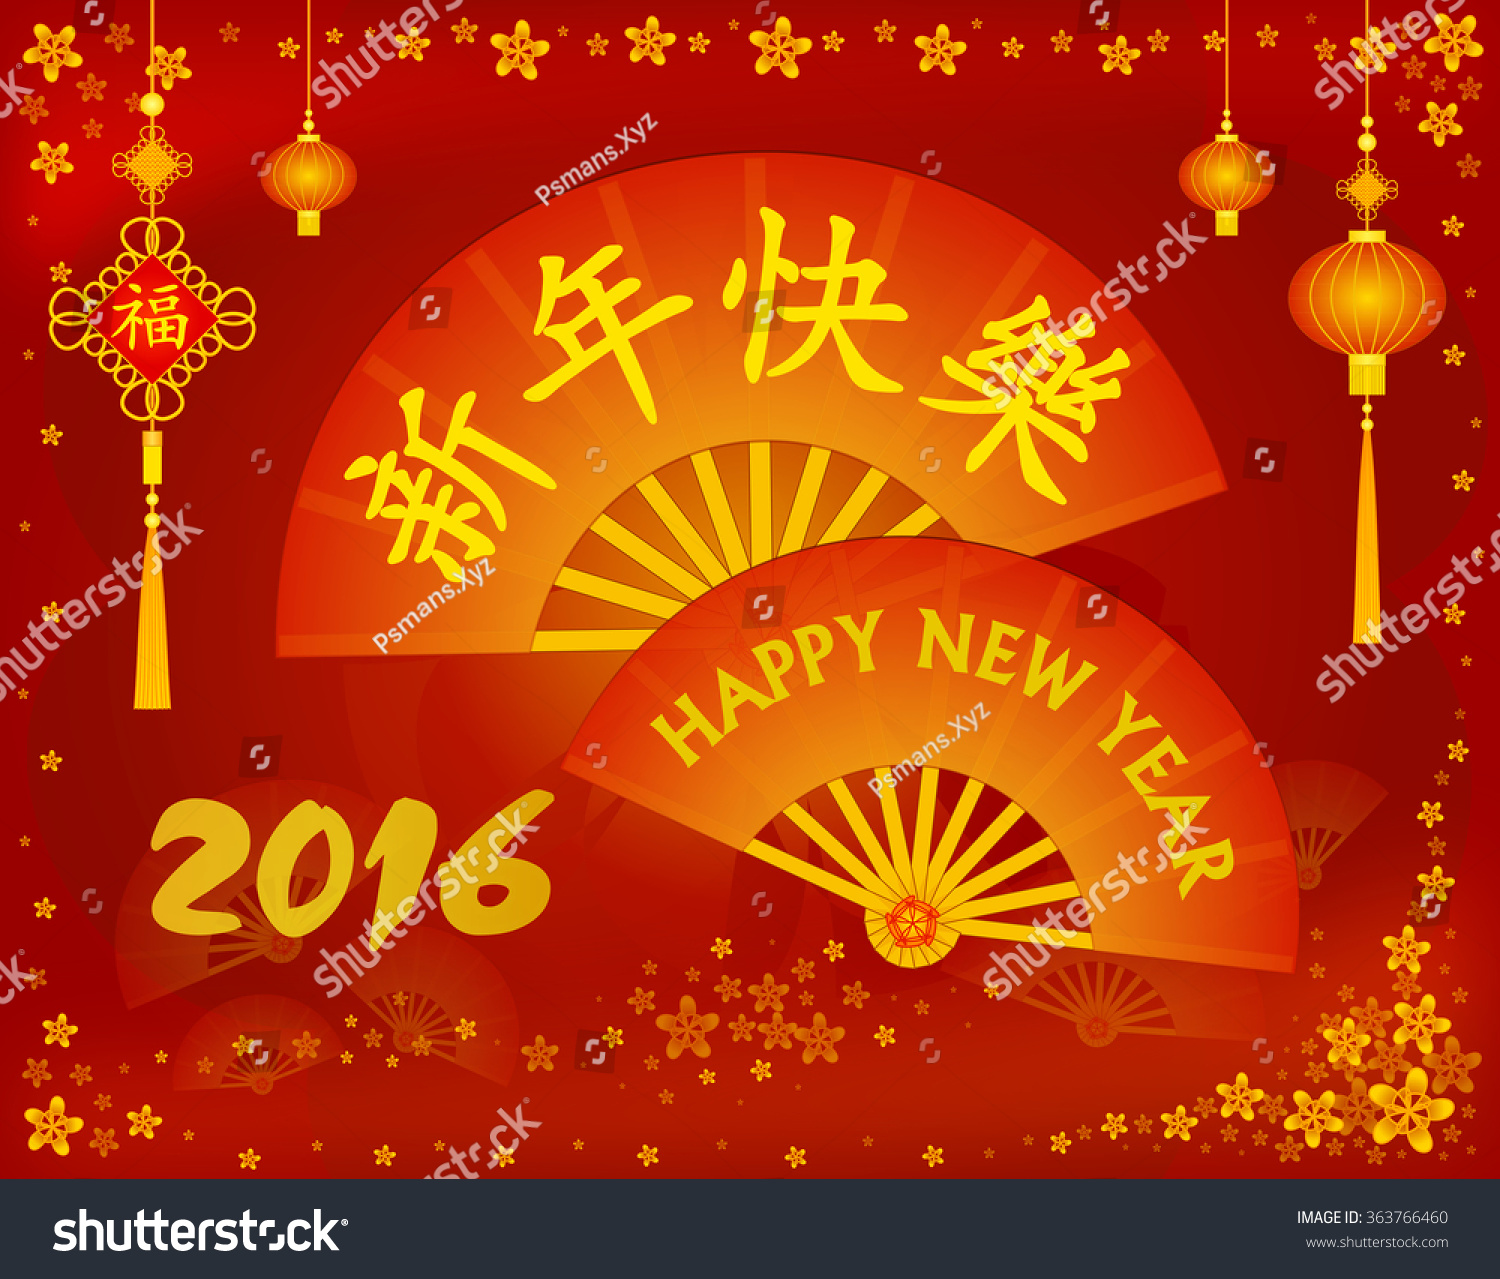 Happy Chinese New Year 2016 Greeting Card In Chinese And English